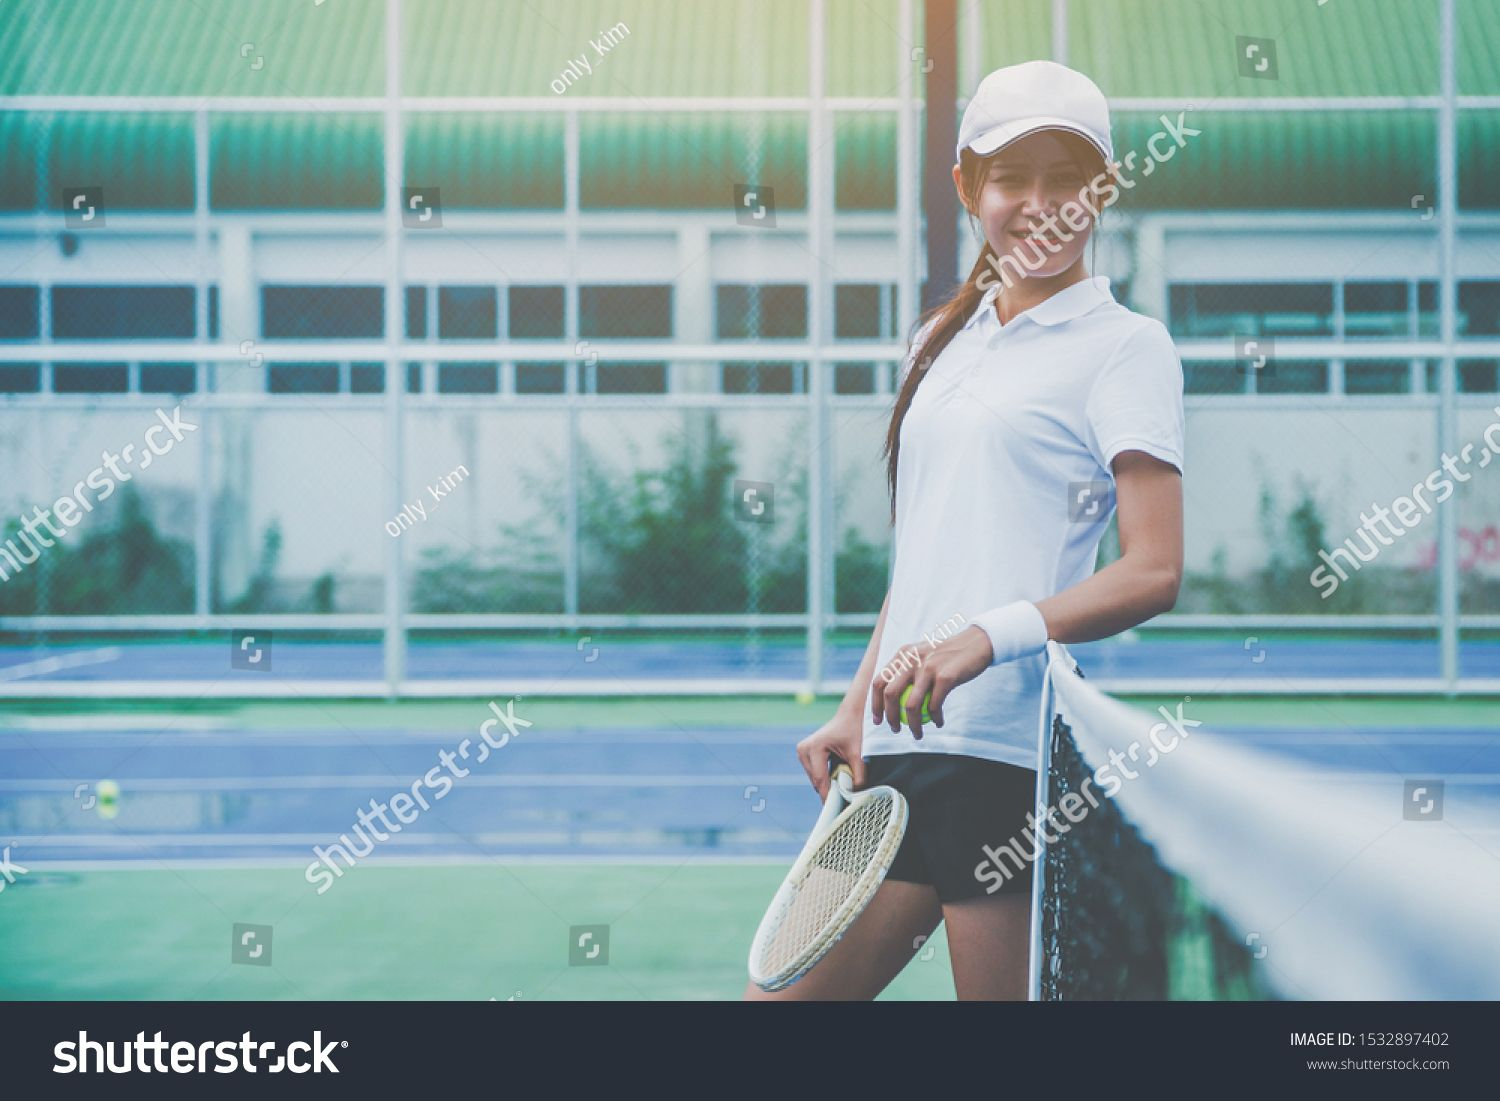 Sport Concept Young People Playing Royalty Free Image Photo In 2020 Free Stock Photos Young People Photo Editing